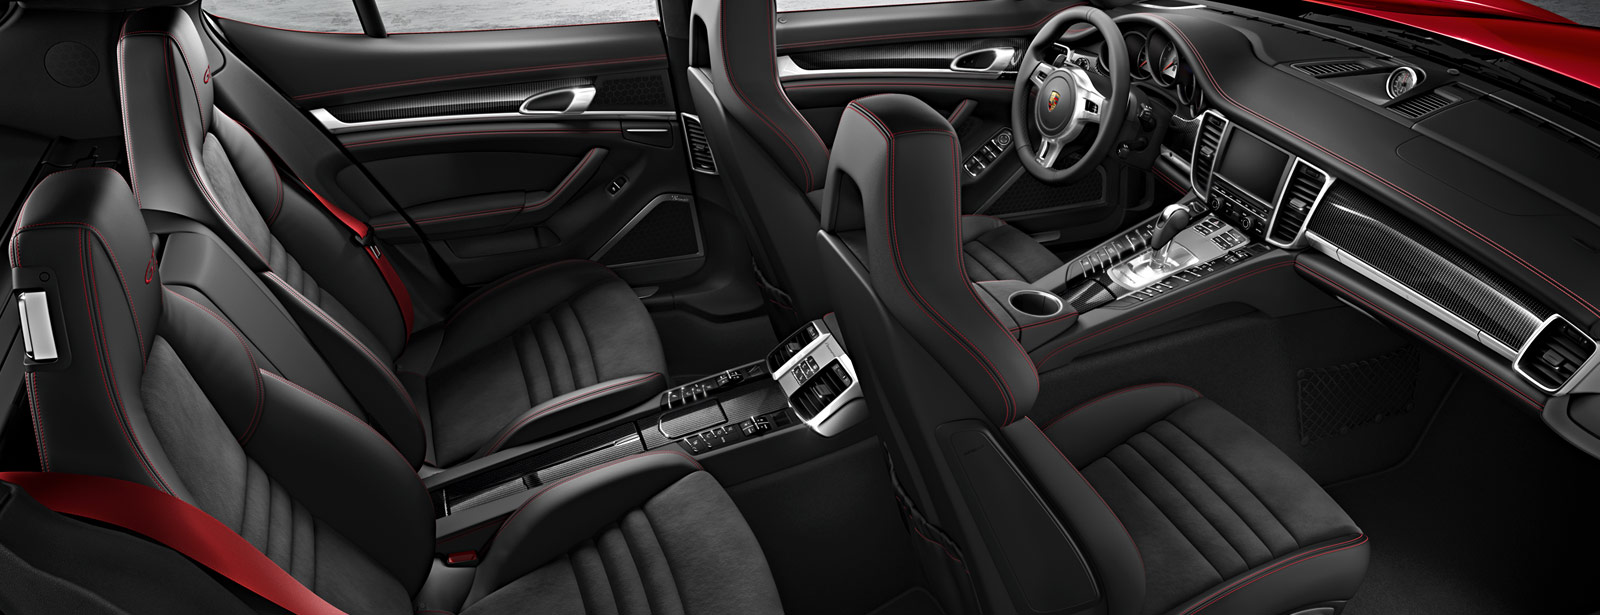 2016 Porsche Panamera GTS interior seating